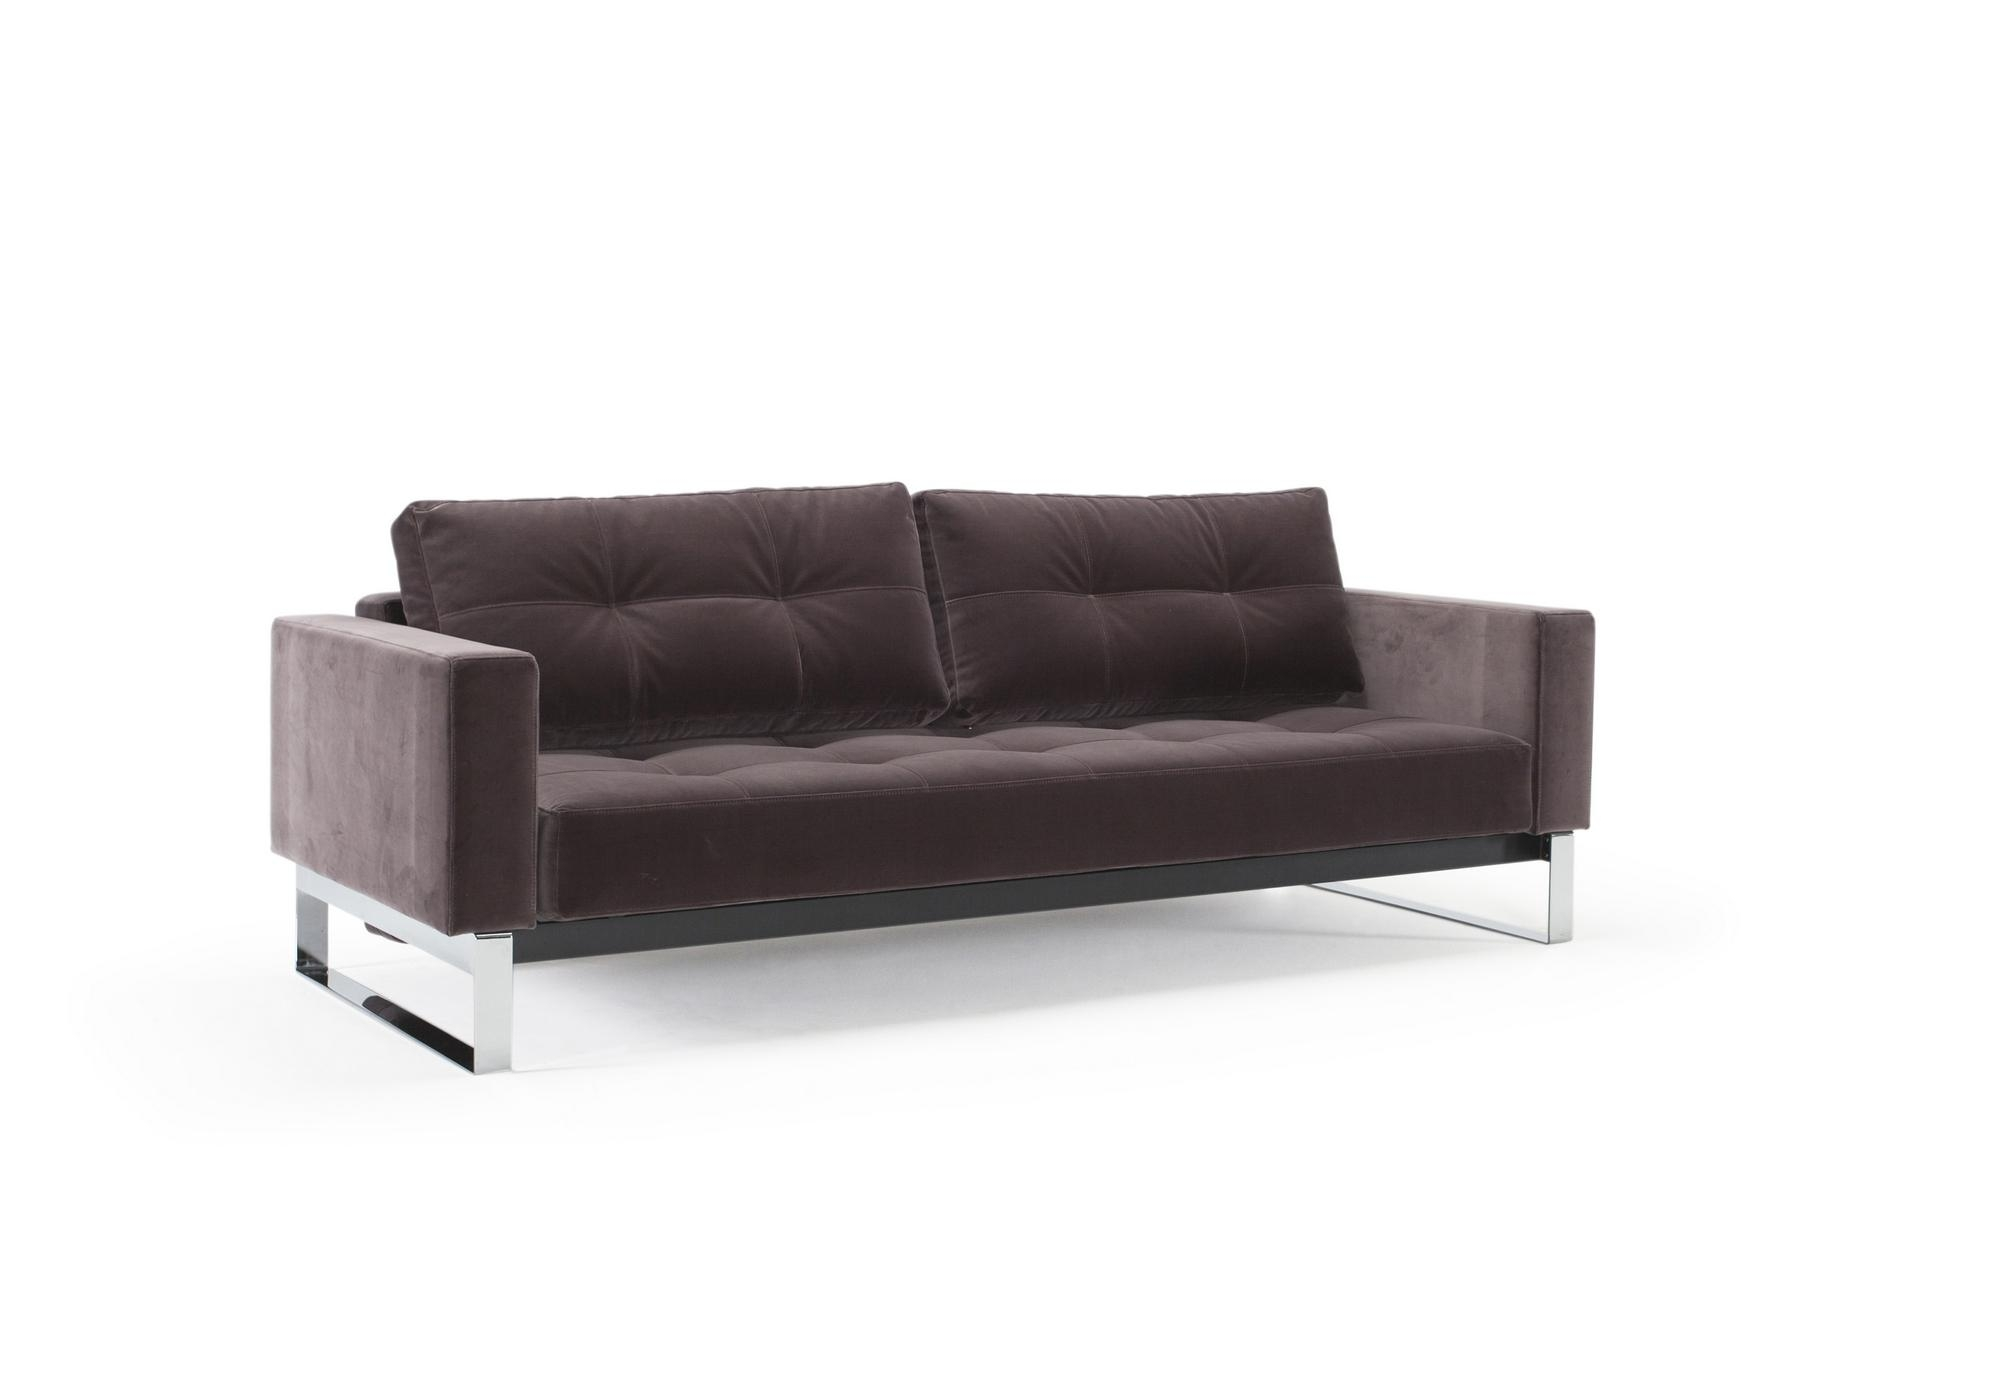 Furniture: Breathtaking Grey Velvet Sofa For Charming Home With Sofas With Chrome Legs (Image 10 of 20)